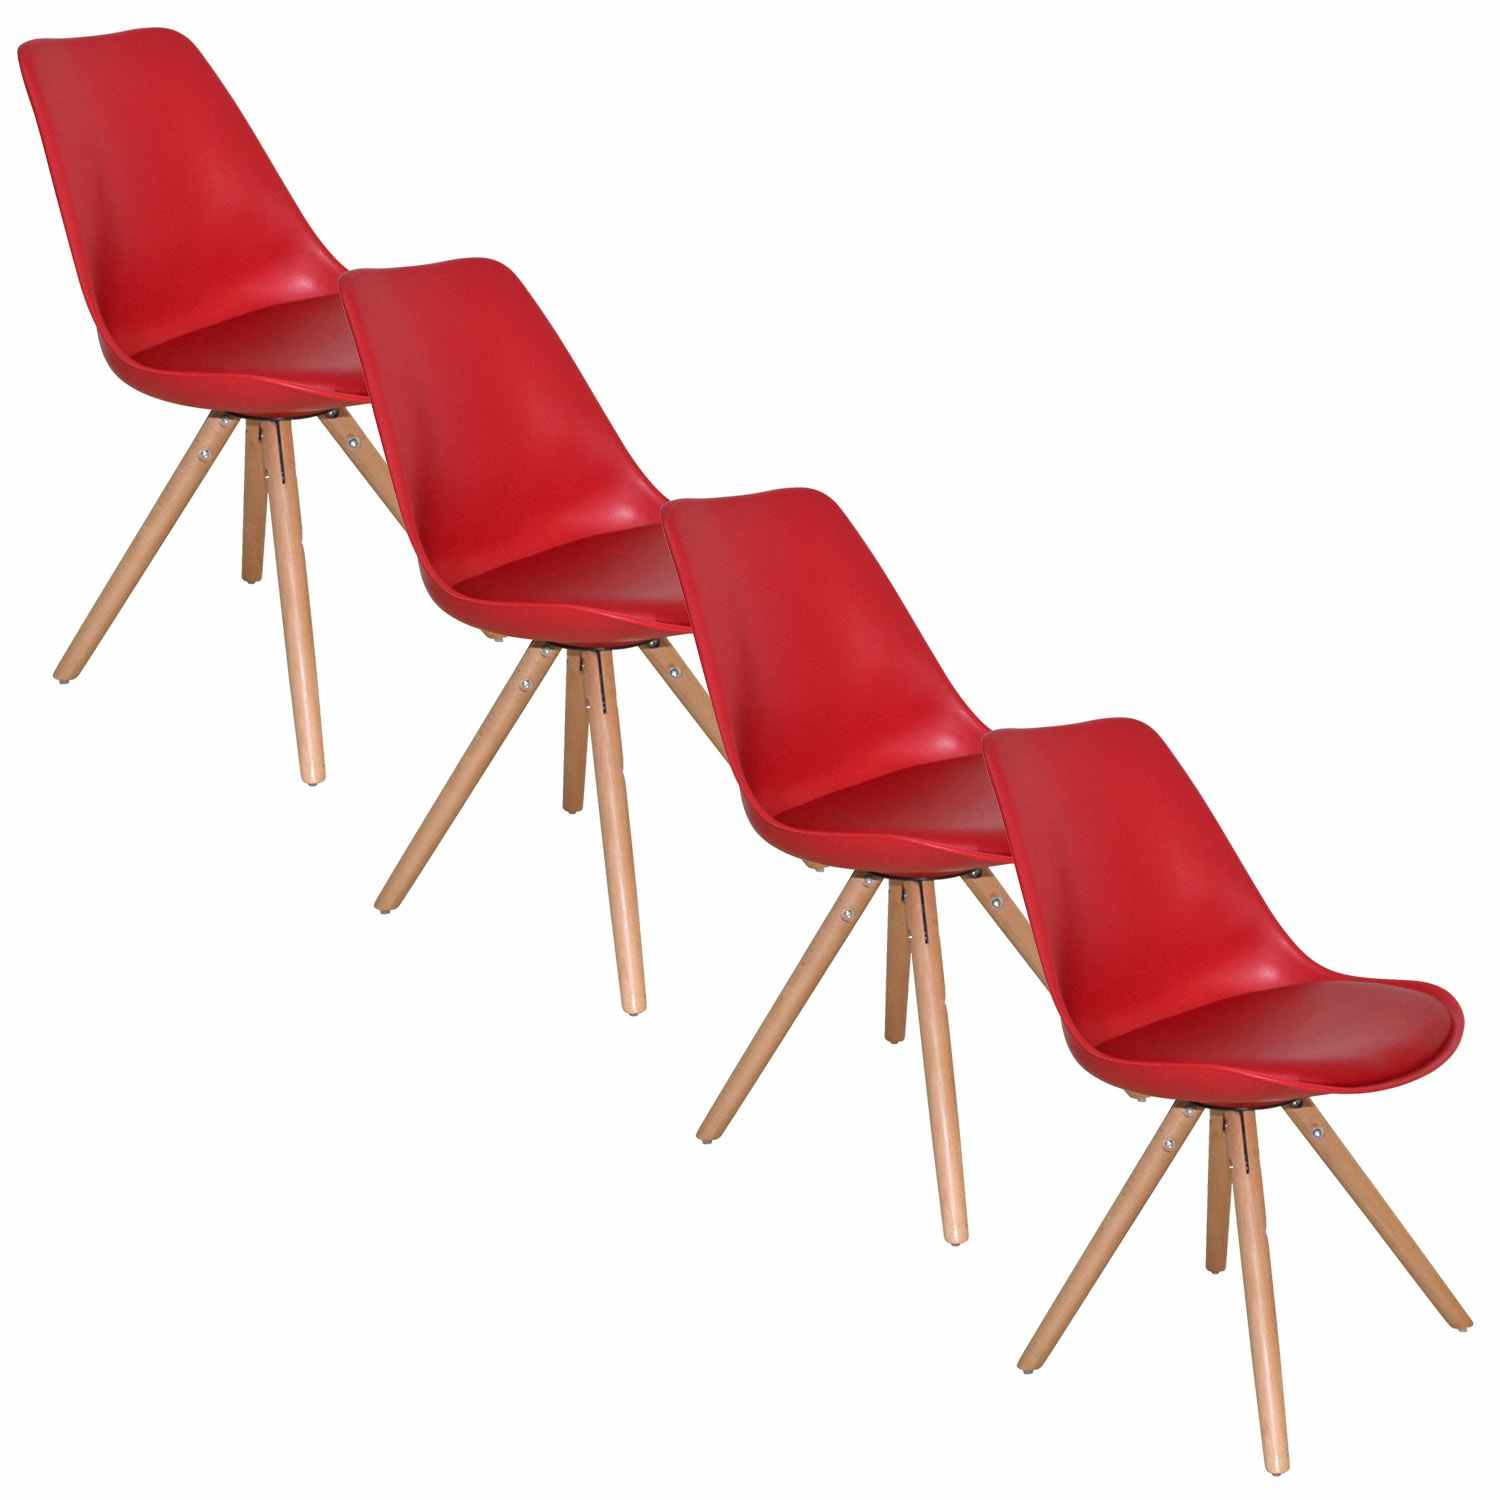 Deco in paris lot de 4 chaises design rouge velta velta for Chaise rouge